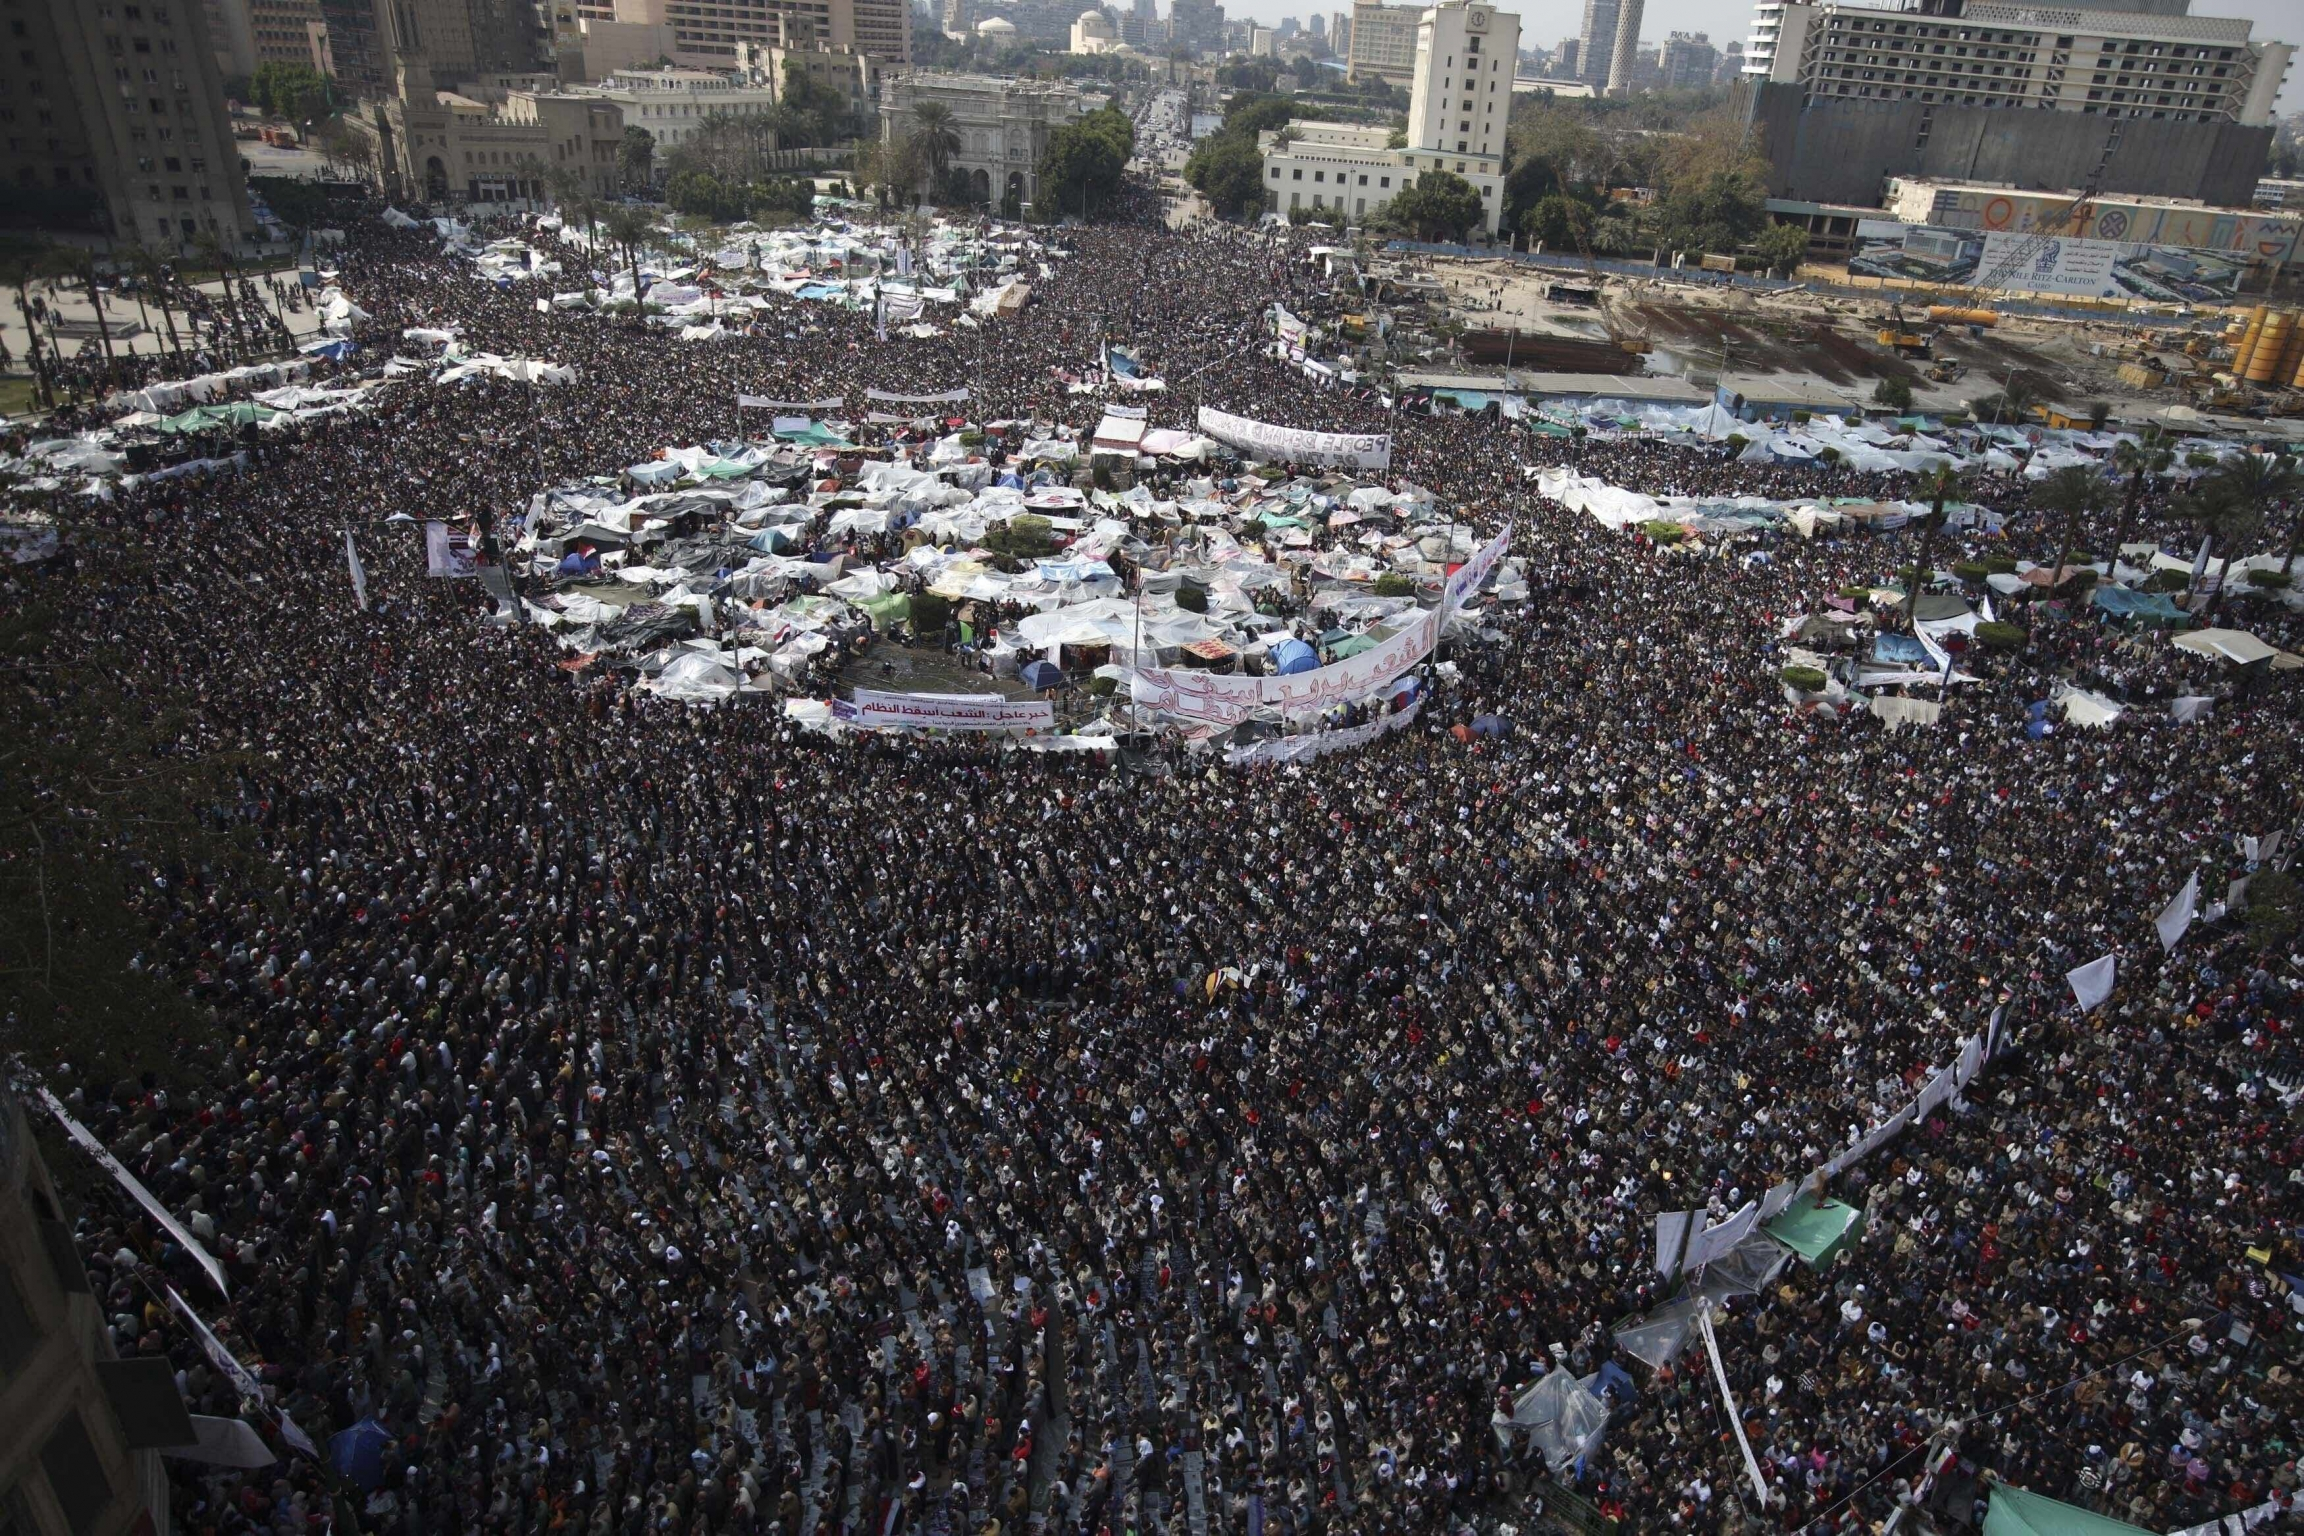 In this Feb. 11, 2011 file photo, anti-government protesters perform Friday prayers at the continuing demonstration in Tahrir Square, Cairo, Egypt.